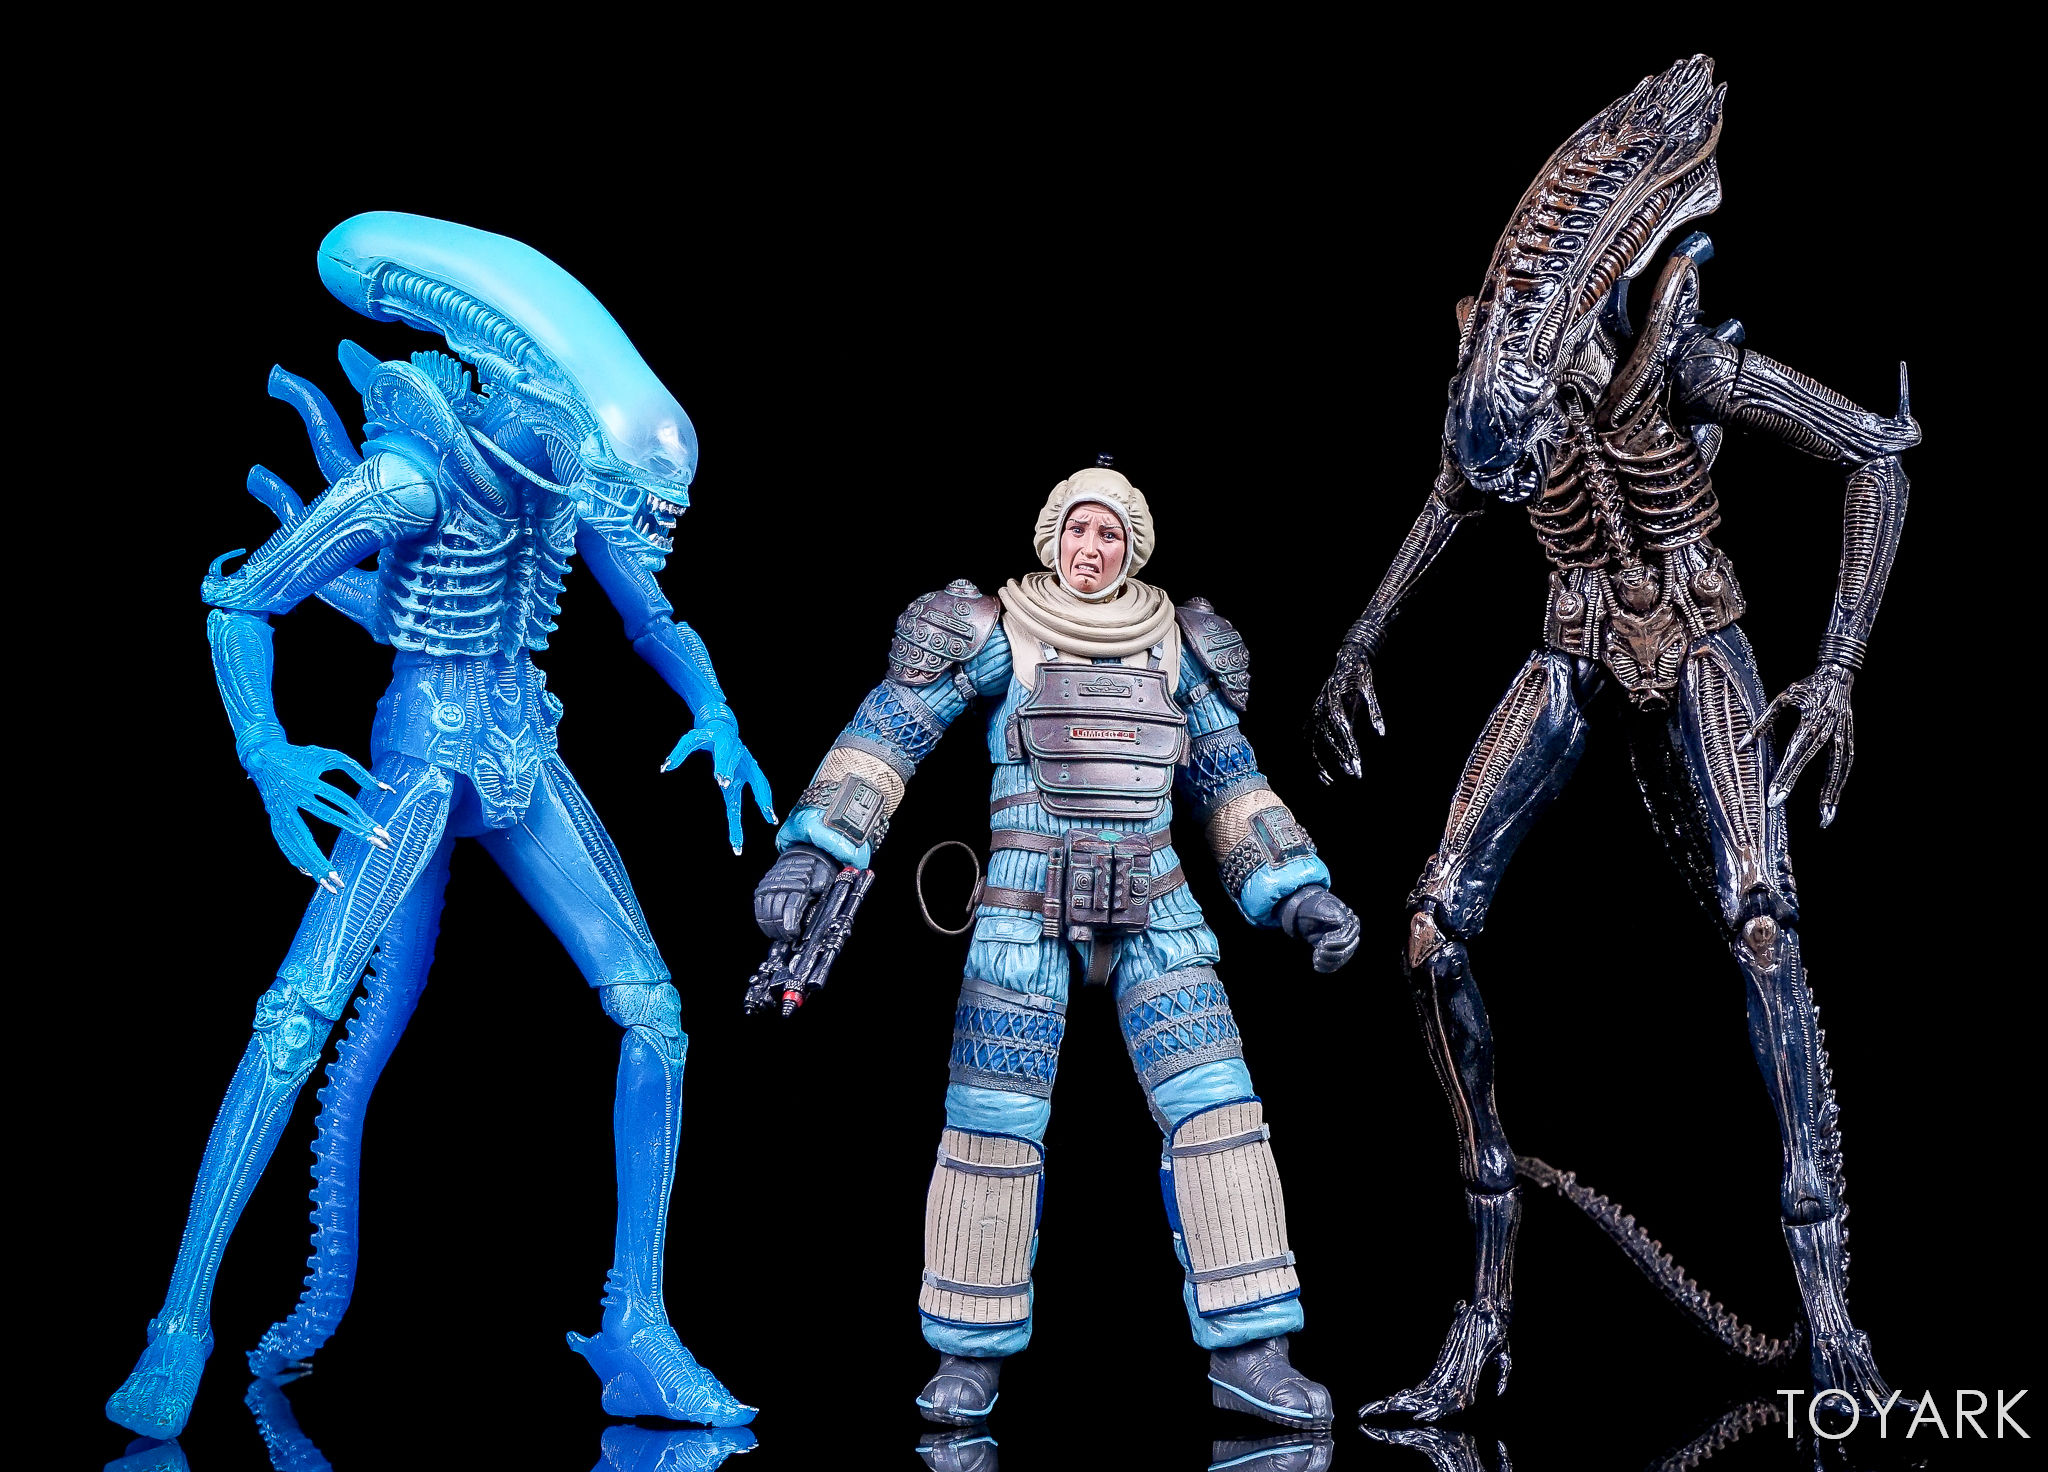 http://news.toyark.com/wp-content/uploads/sites/4/2017/08/NECA-Alien-Series-11-Figures-028.jpg